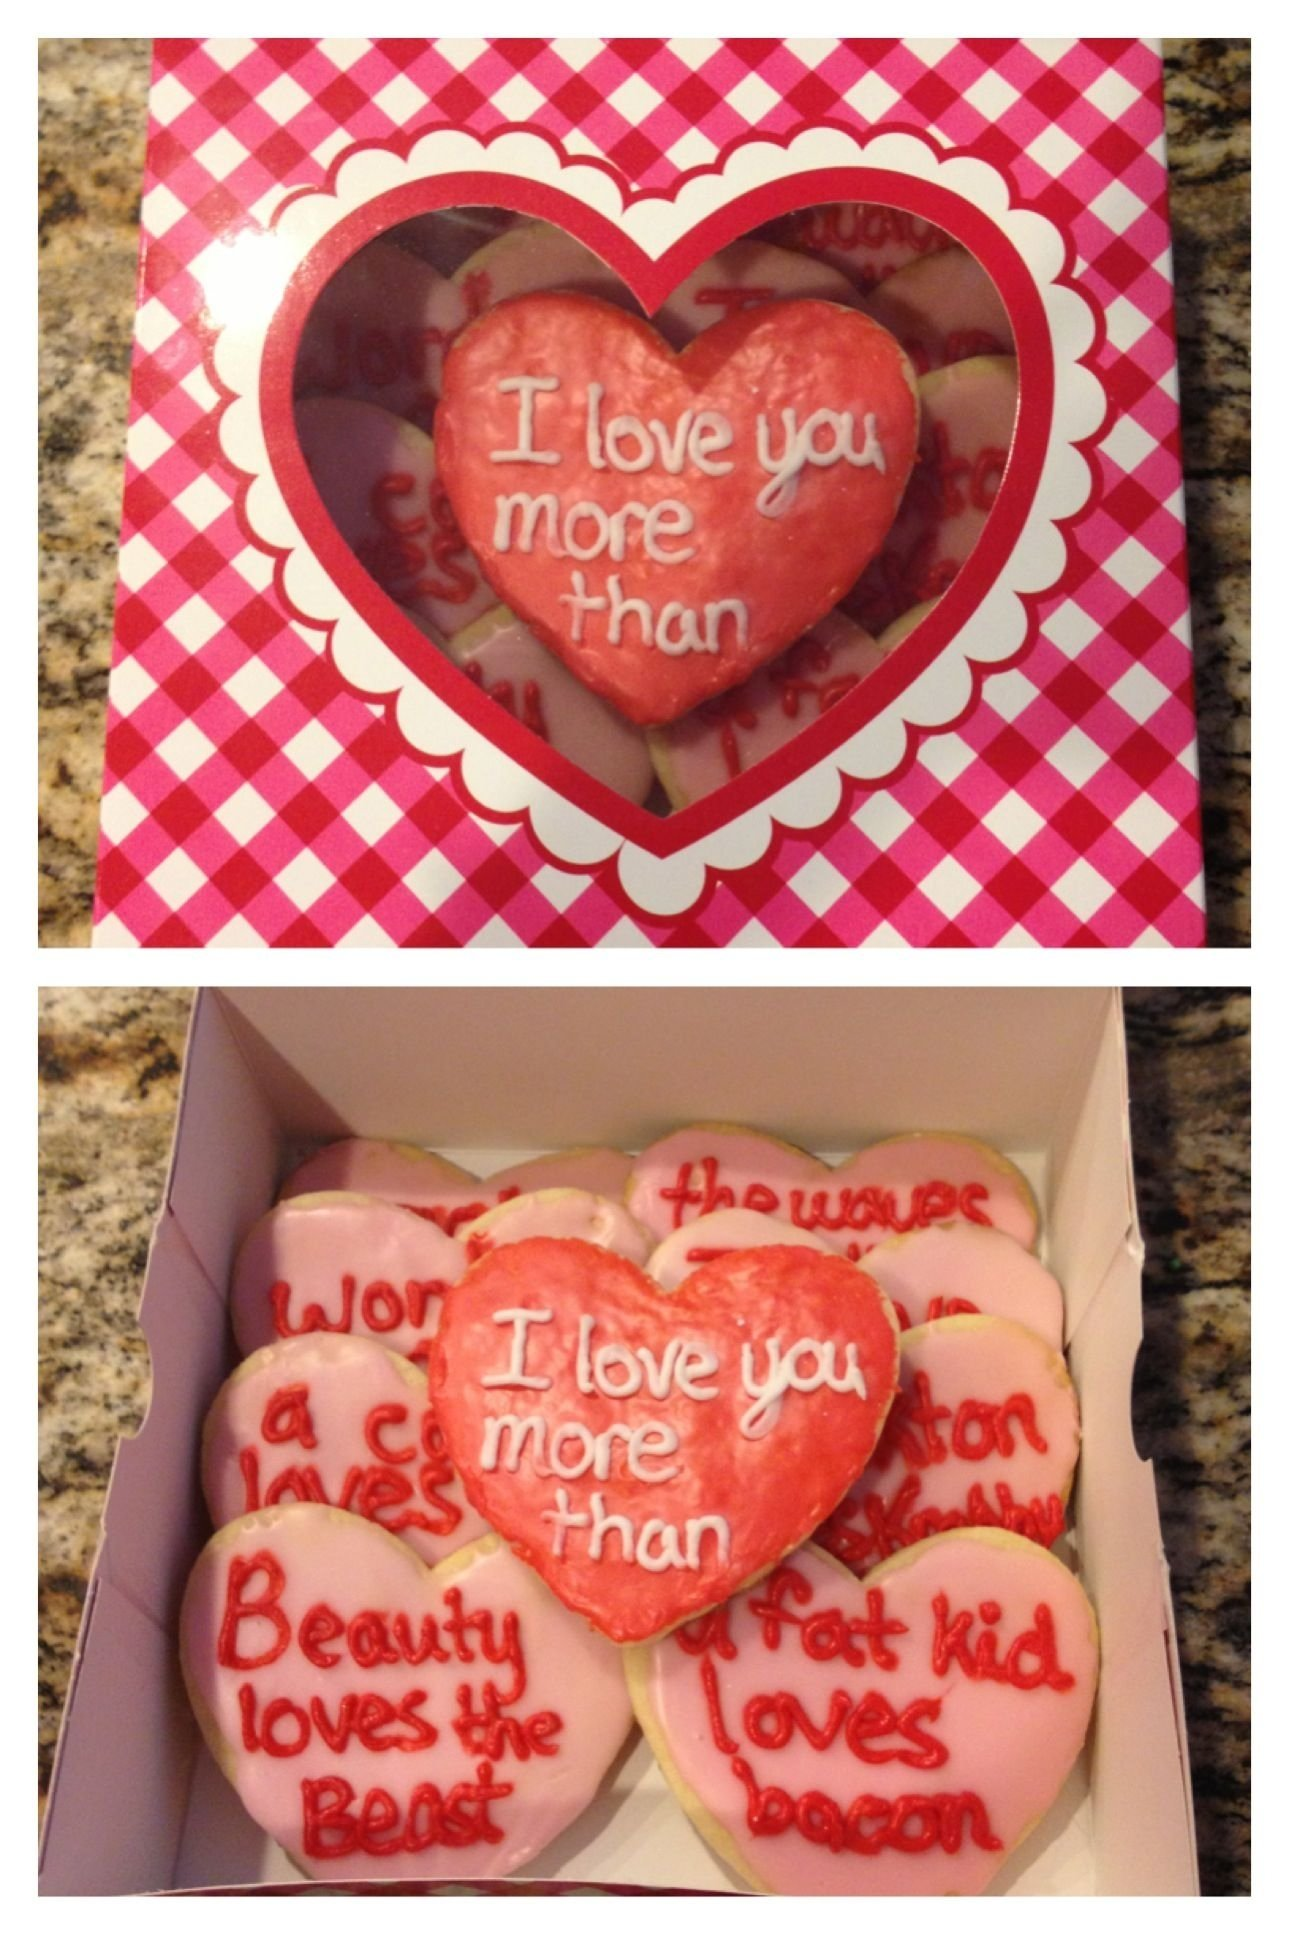 10 Pretty Valentines Day For Husband Ideas cute for a boyfriend or husband on valentines day projects to 2 2020